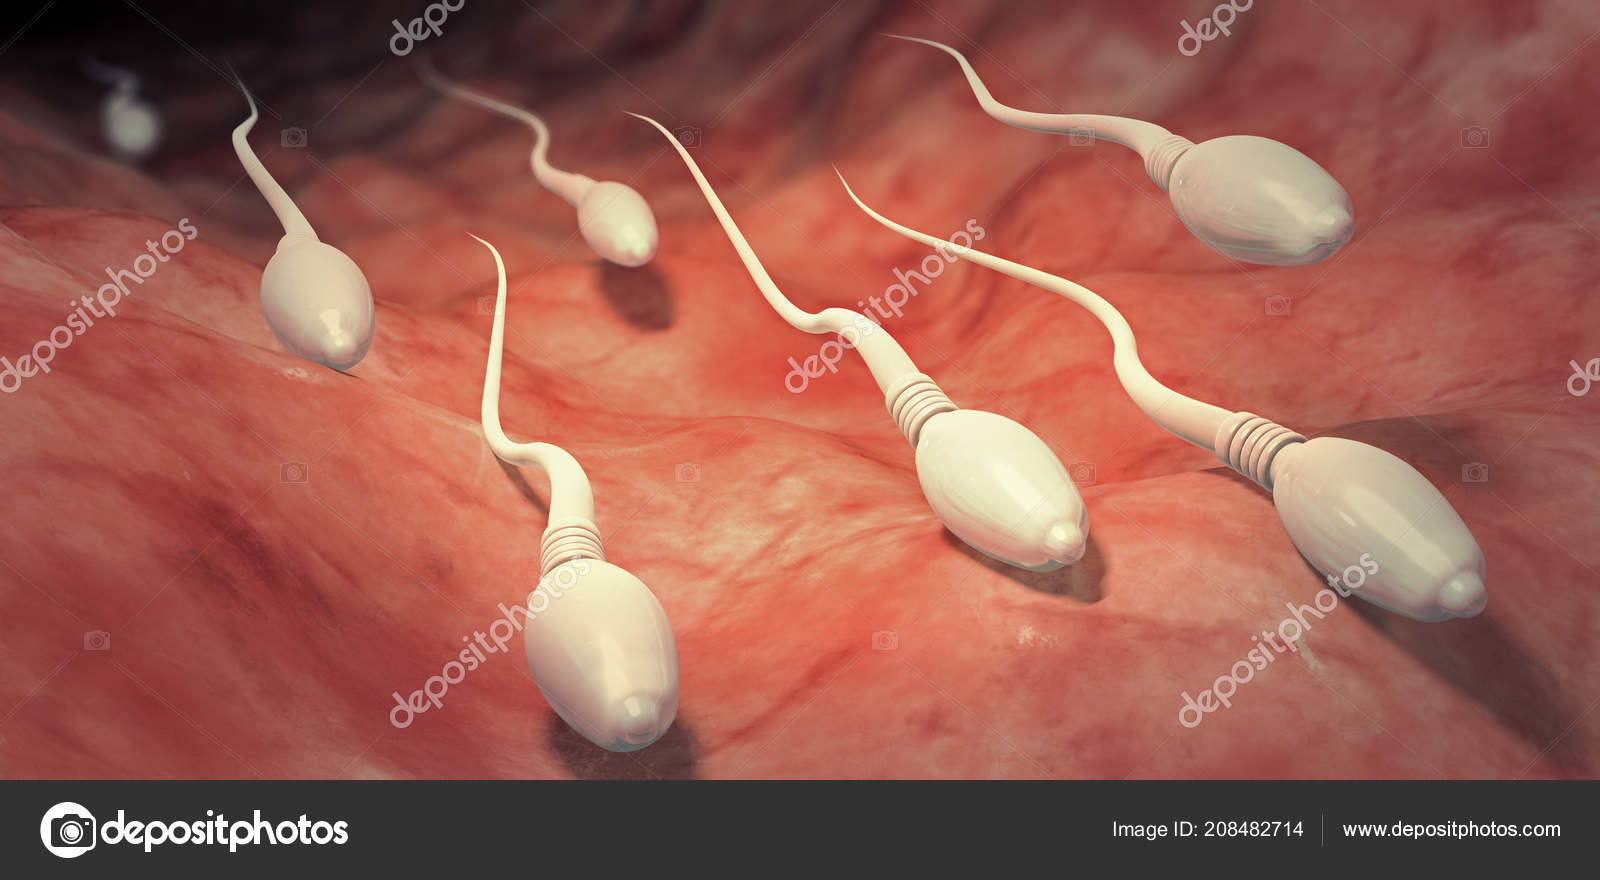 human-sperm-collection